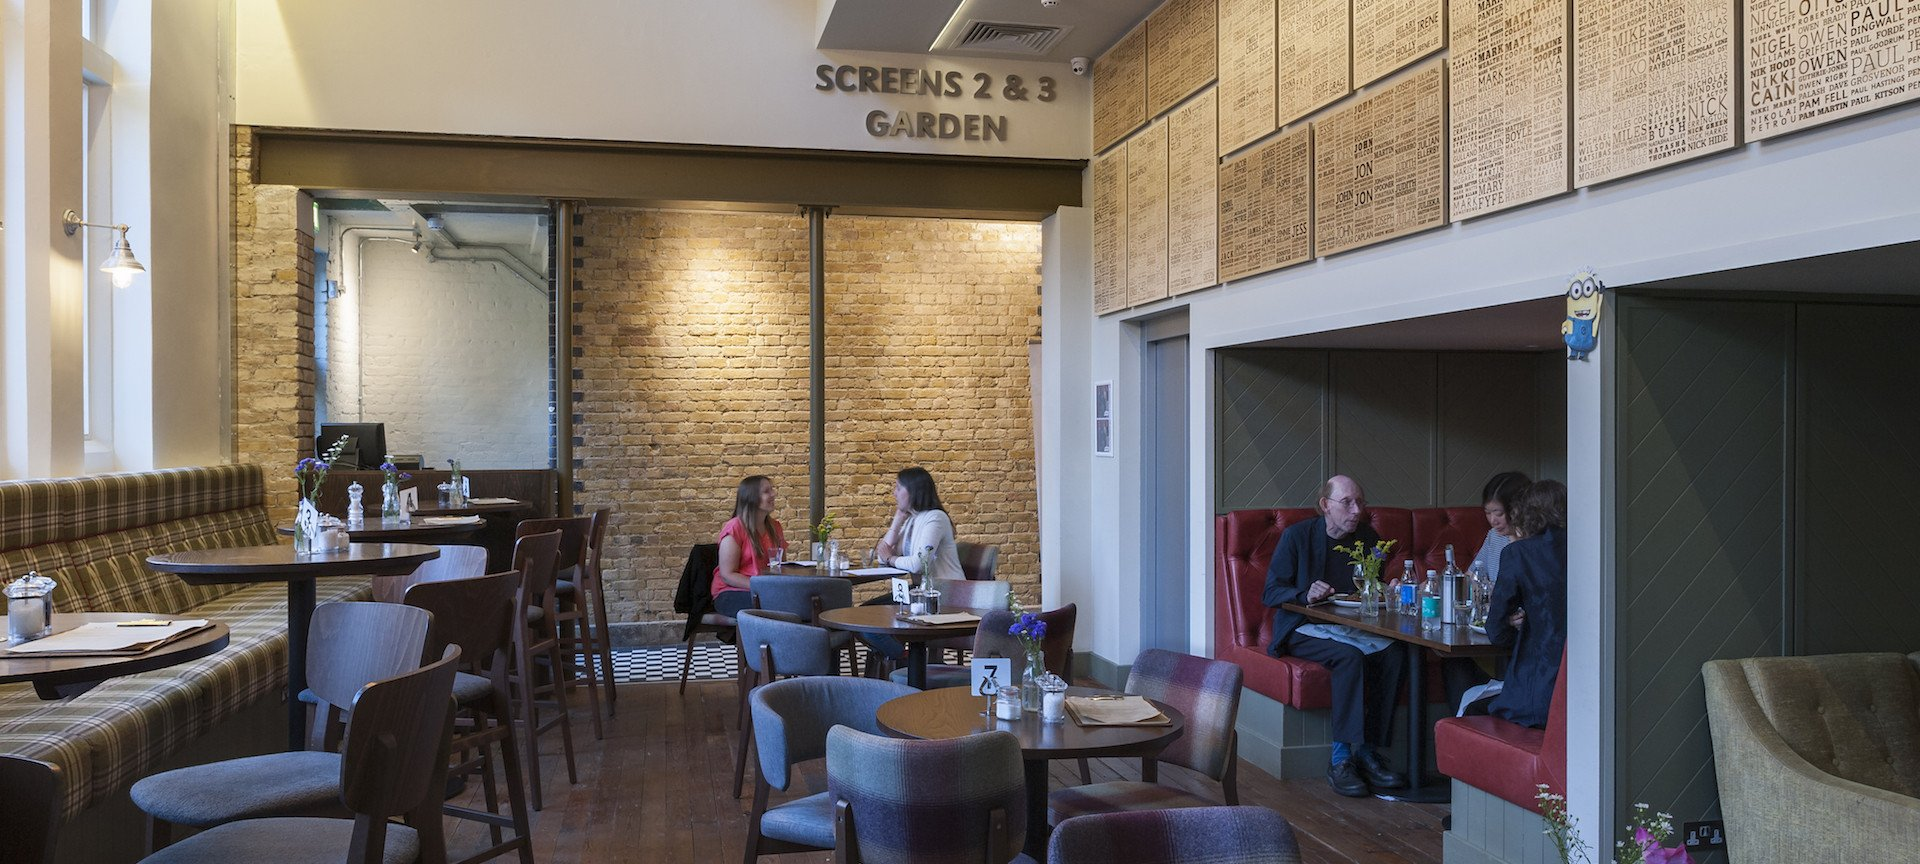 VENUE AND EVENT HIRE<br>AT EAST DULWICH PICTUREHOUSE AND CAFÉ